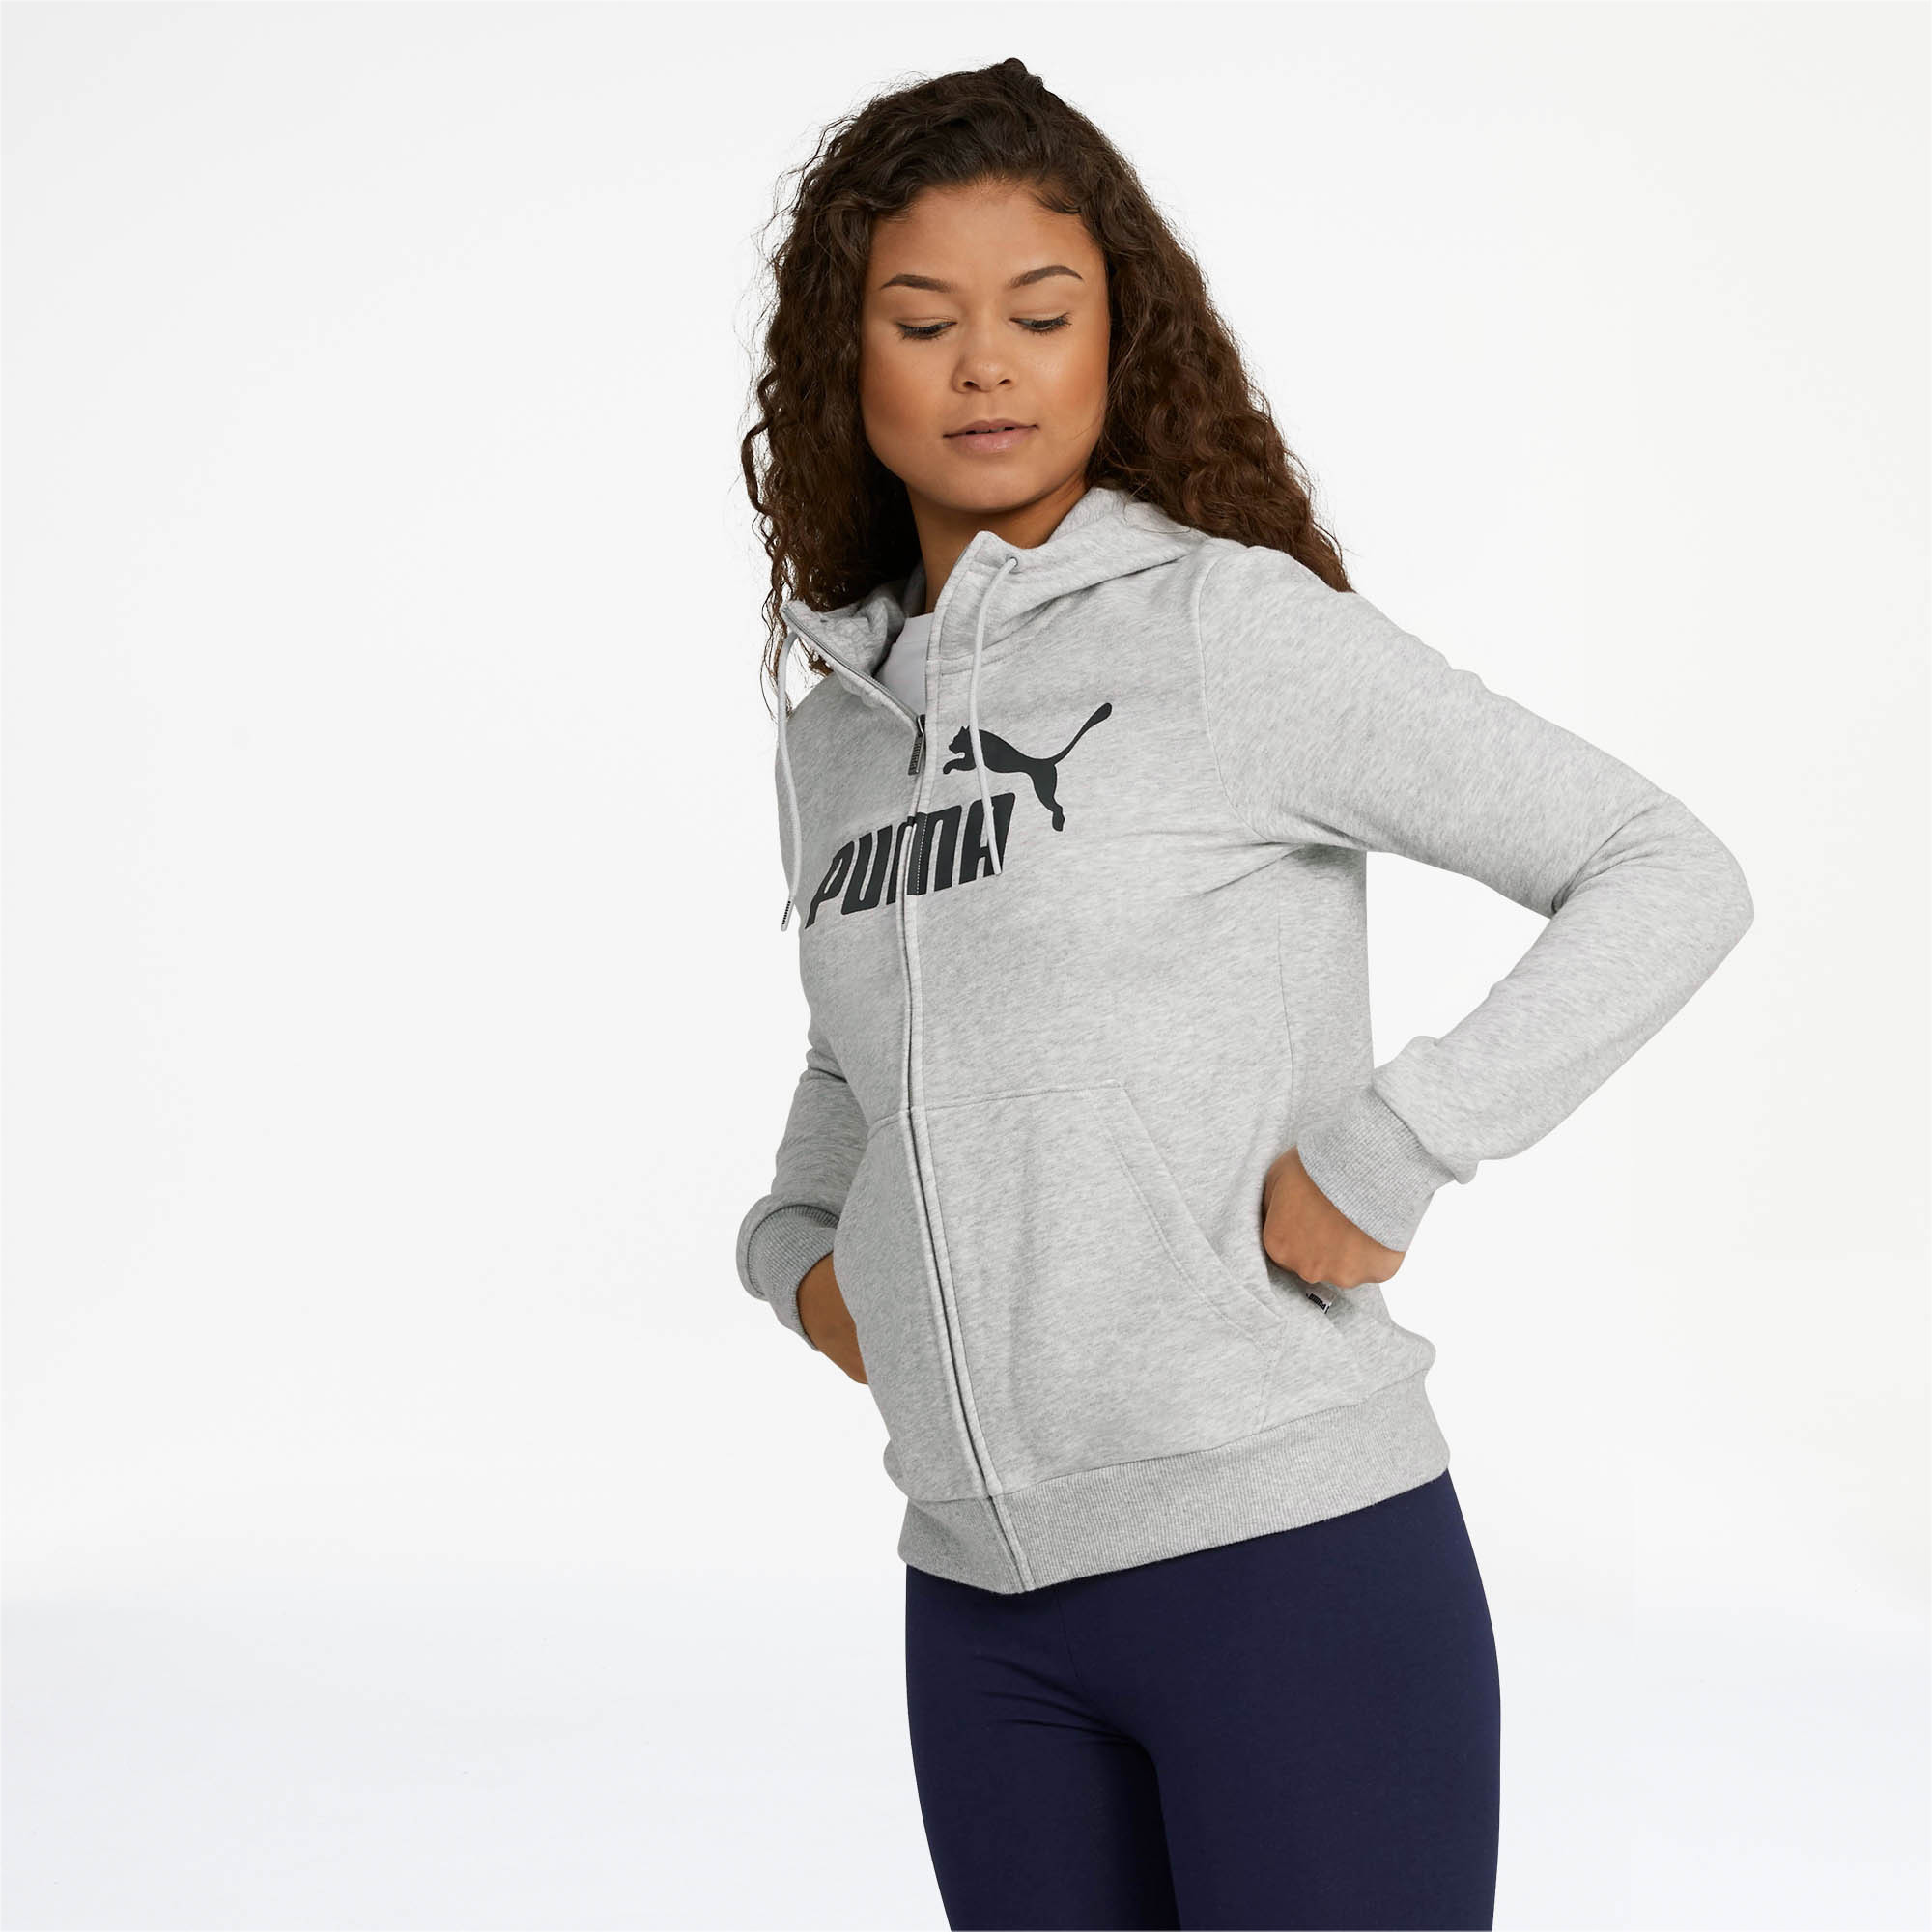 PUMA-Women-039-s-Essential-Fleece-Hooded-Jacket-Women-Sweat-Basics thumbnail 10